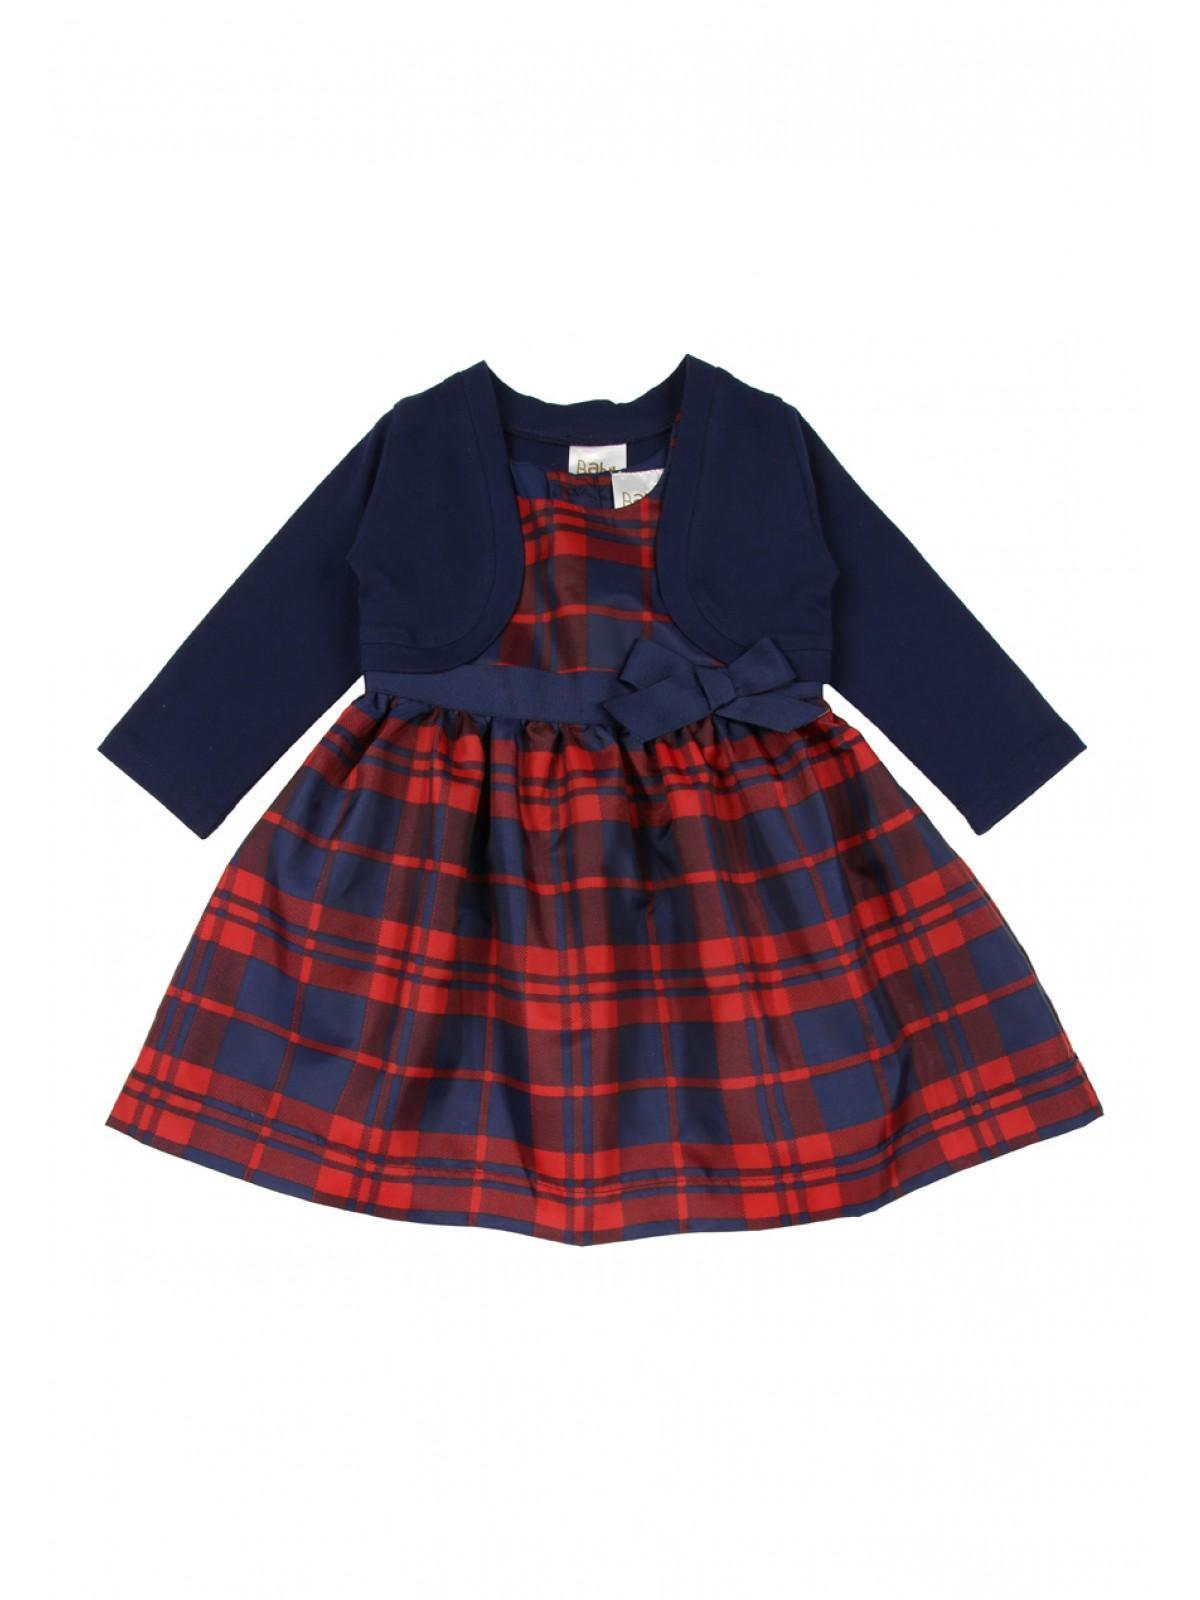 8e40a83b66 Home; Baby Girls Tartan Dress And Shrug. Back. PreviousNext